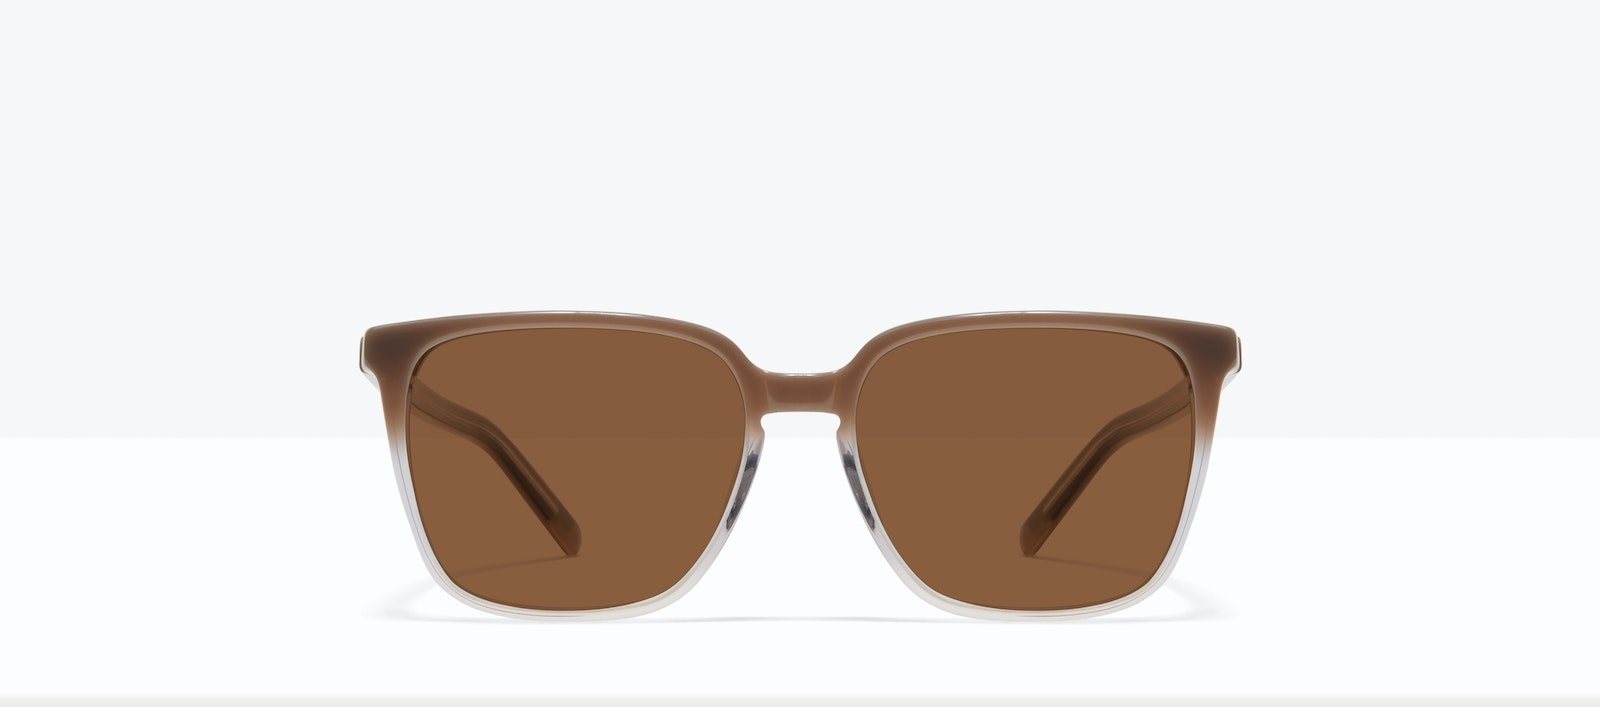 Affordable Fashion Glasses Square Sunglasses Women Runway S Smokey Ombré Front